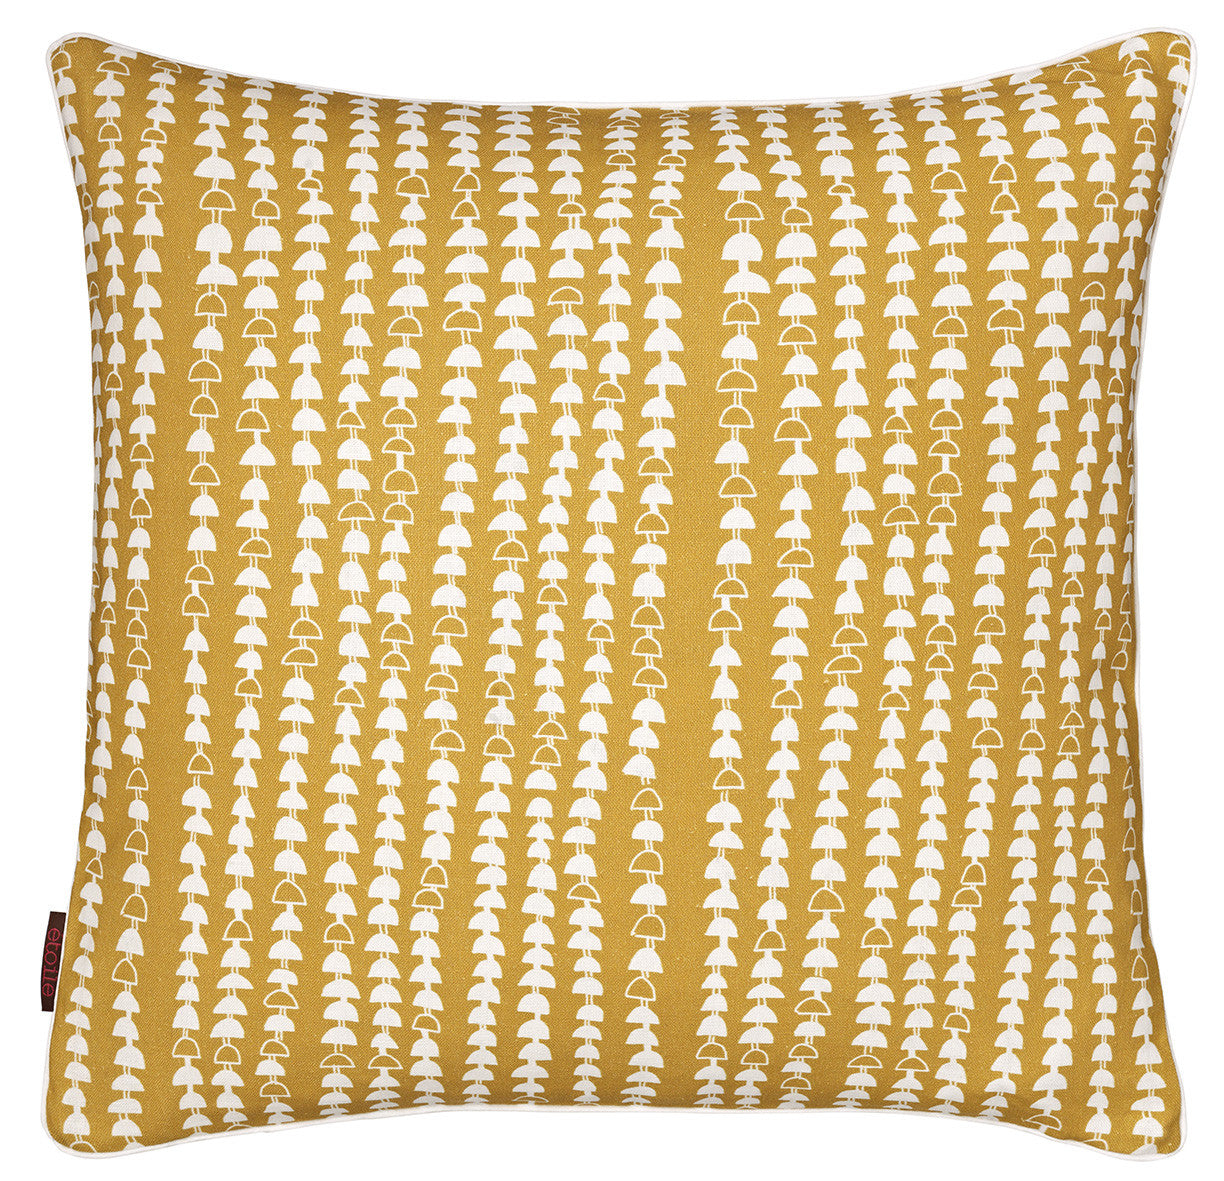 Hopi Graphic Pattern Cotton Linen Cushion in Gold